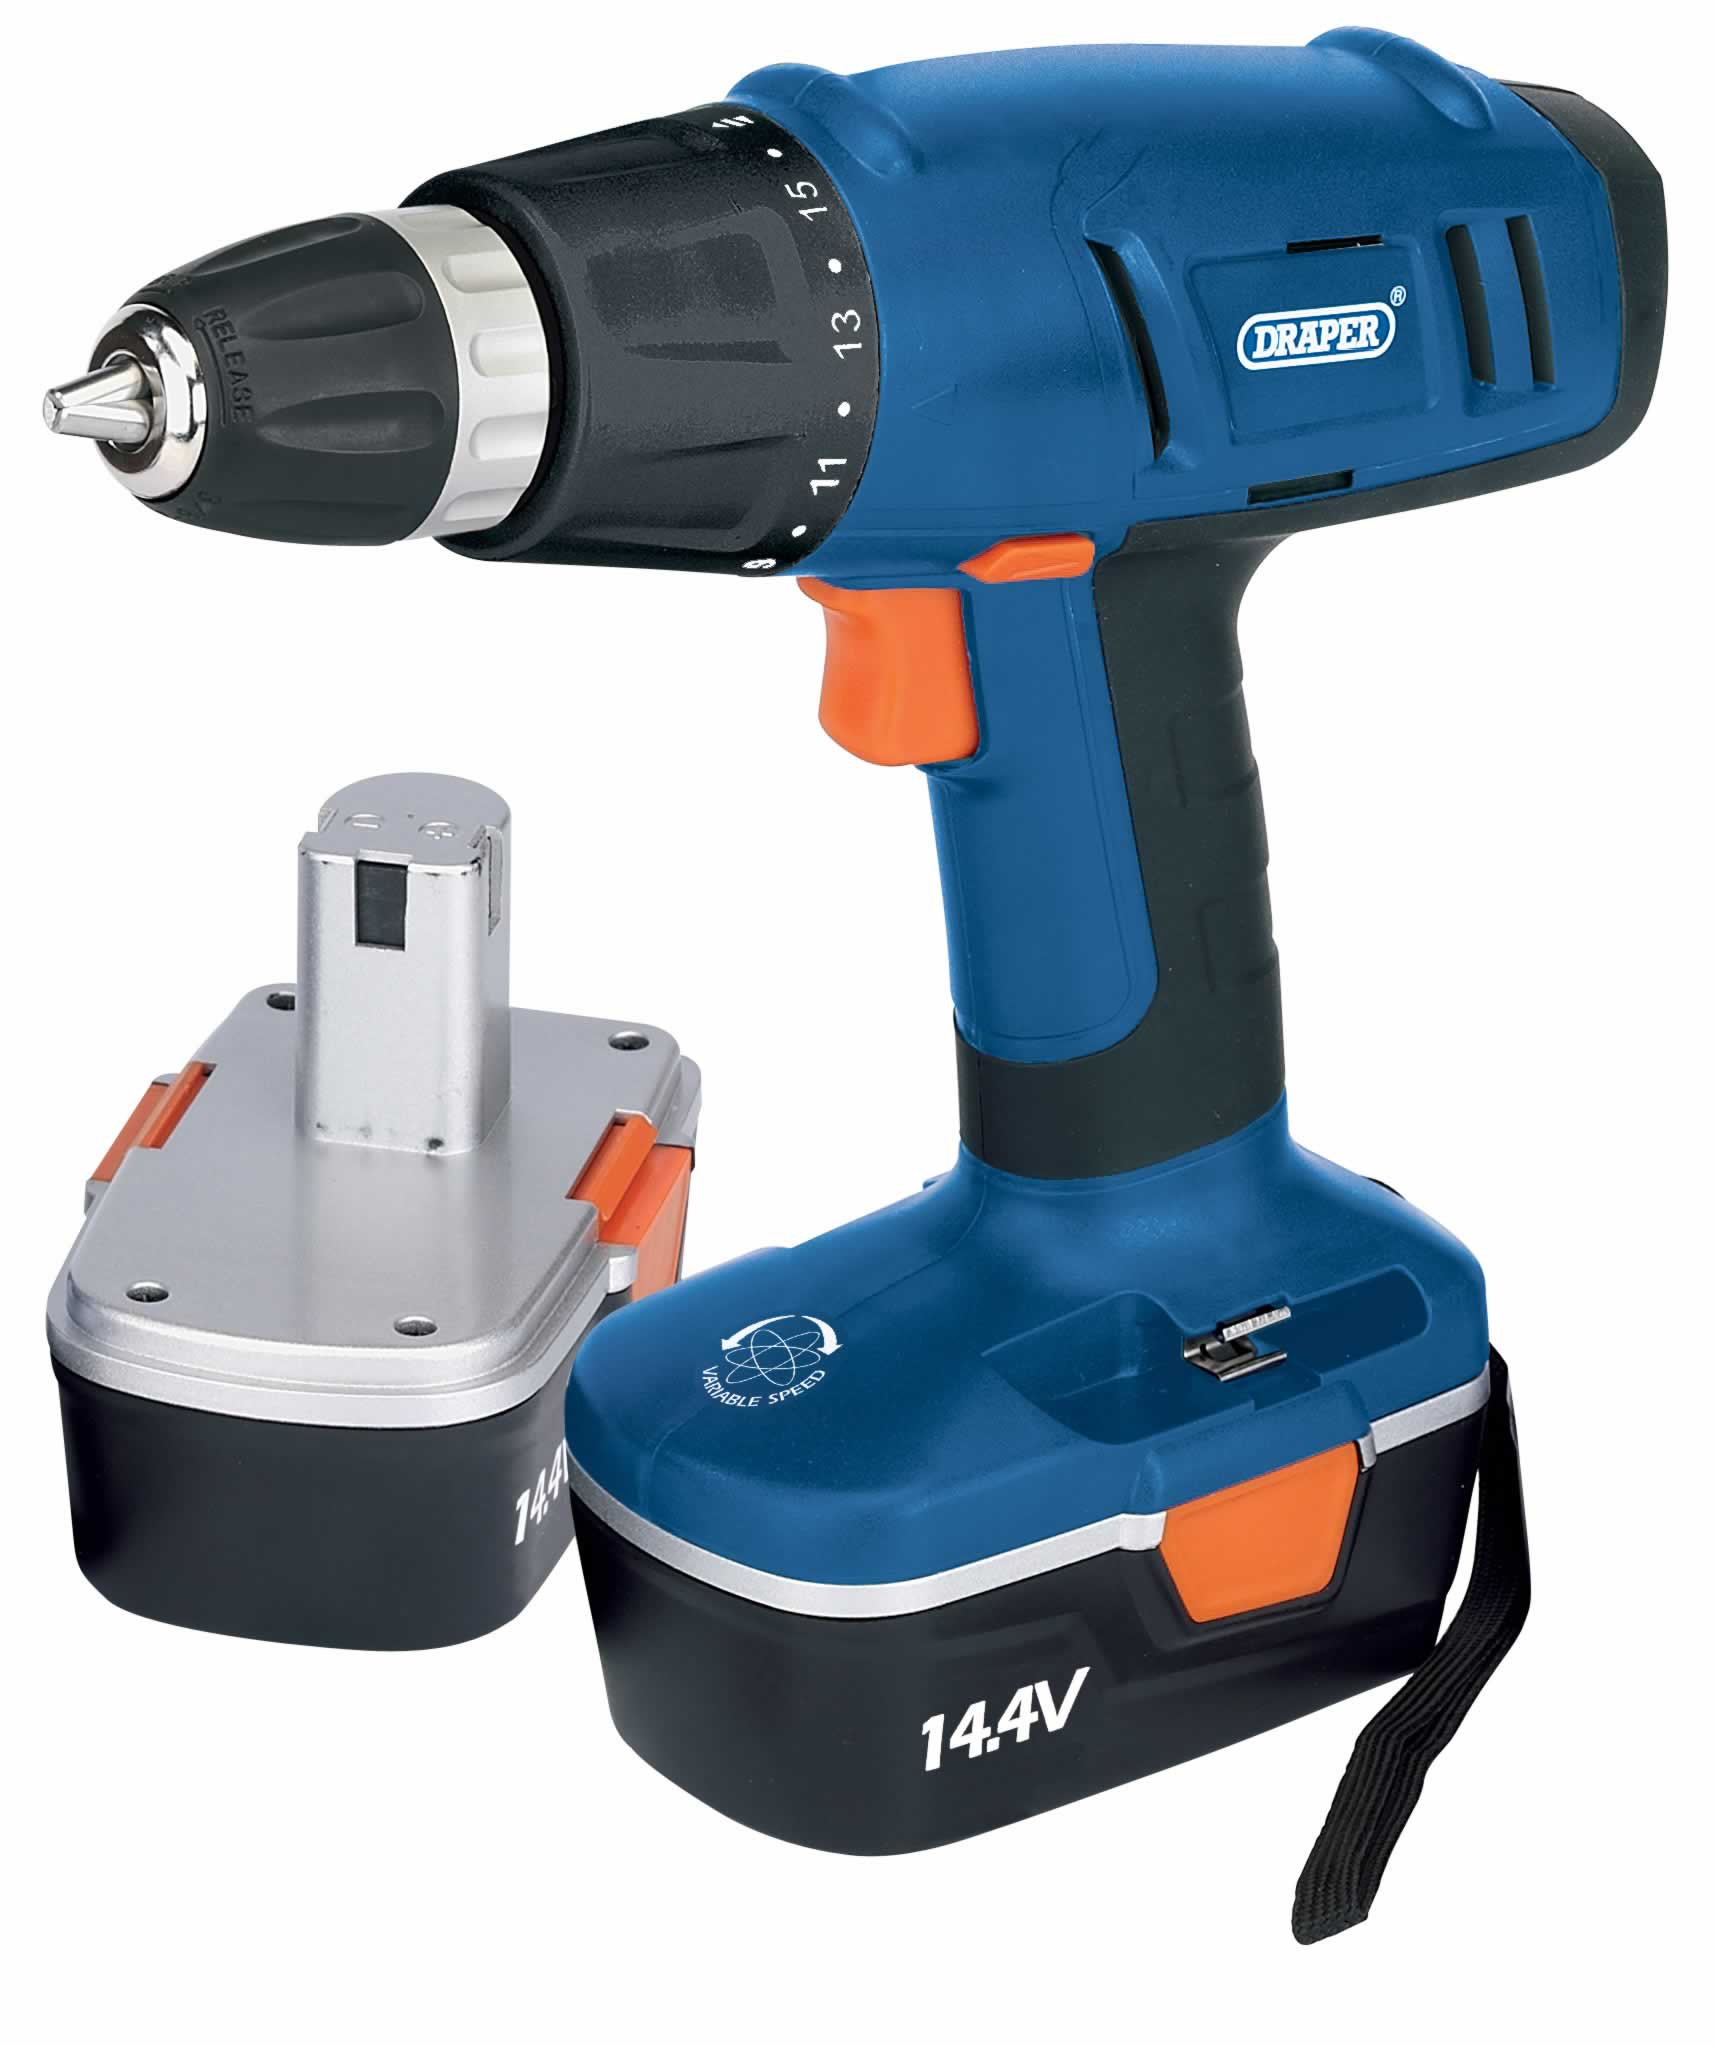 14.4V CORDLESS ROTARY DRILL WITH TWO BATTERIES